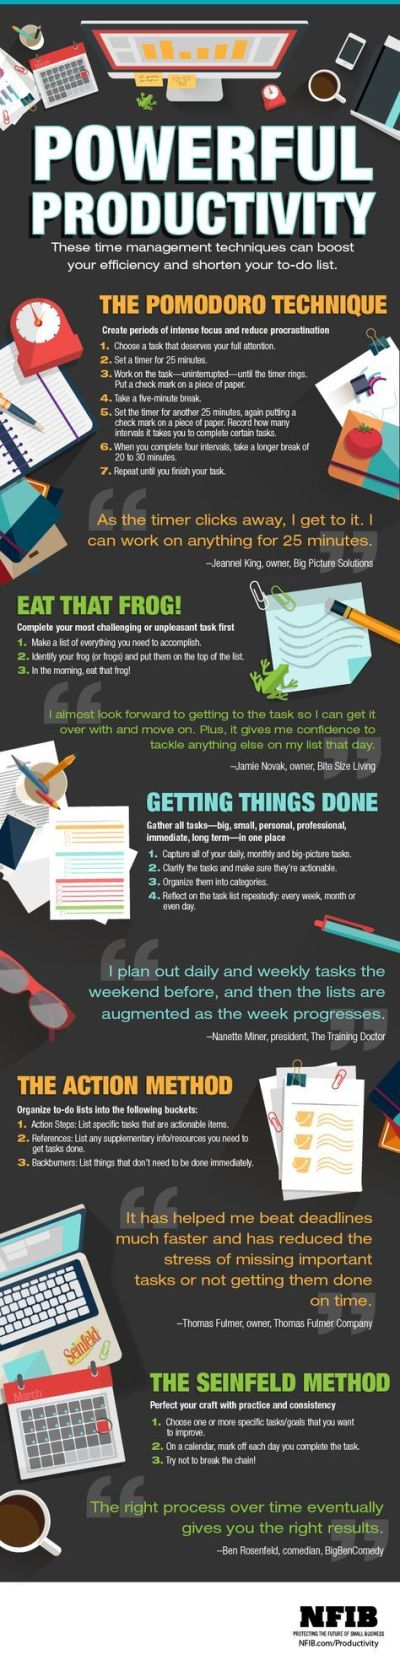 Best 25+ Getting Things Done ideas on Pinterest | Time management techniques, Life coach jobs ...